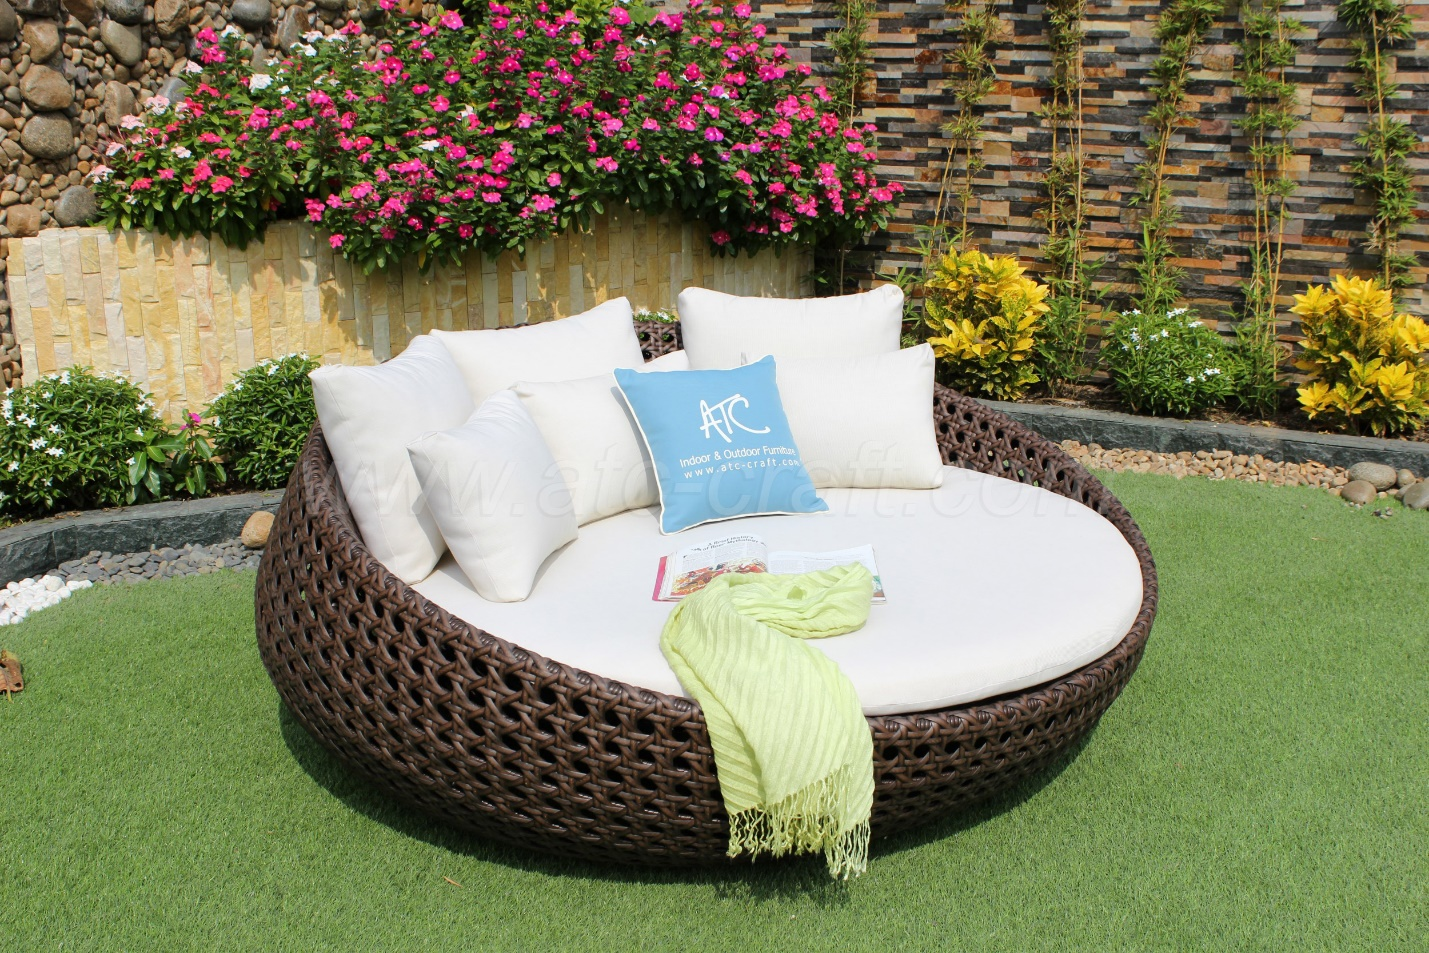 canopy daybed outdoor wicker sun sofa lounge contemporary navy blue sectional daybeds loungers and sunbeds what are